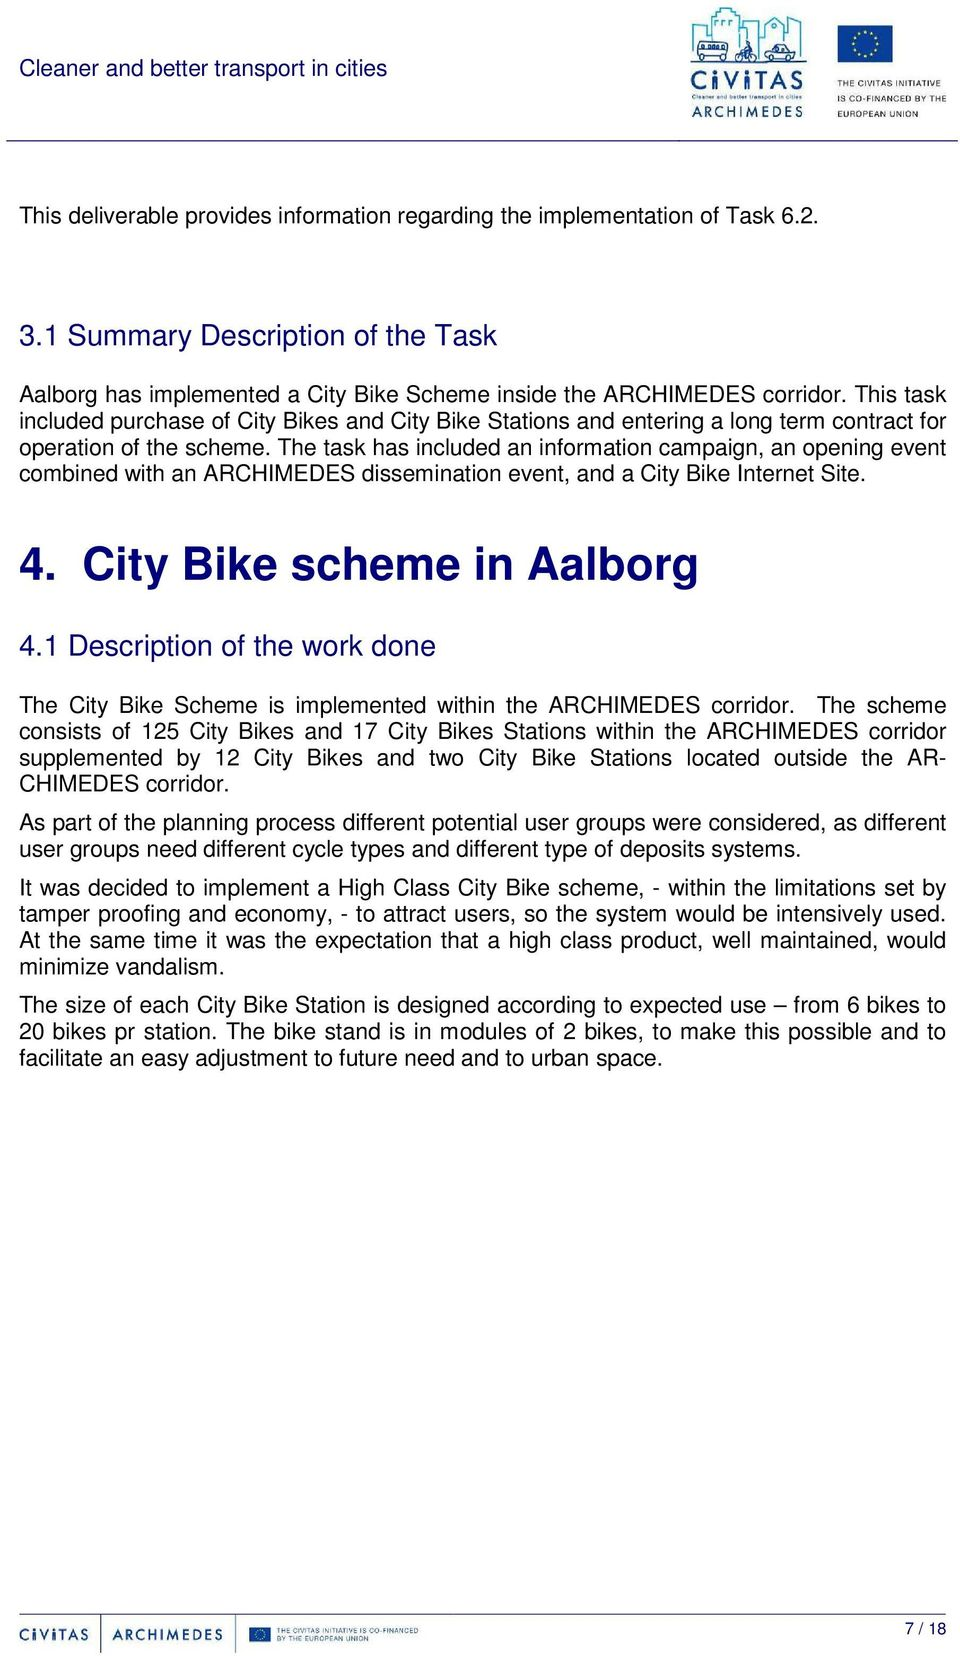 The task has included an information campaign, an opening event combined with an ARCHIMEDES dissemination event, and a City Bike Internet Site. 4. City Bike scheme in Aalborg 4.